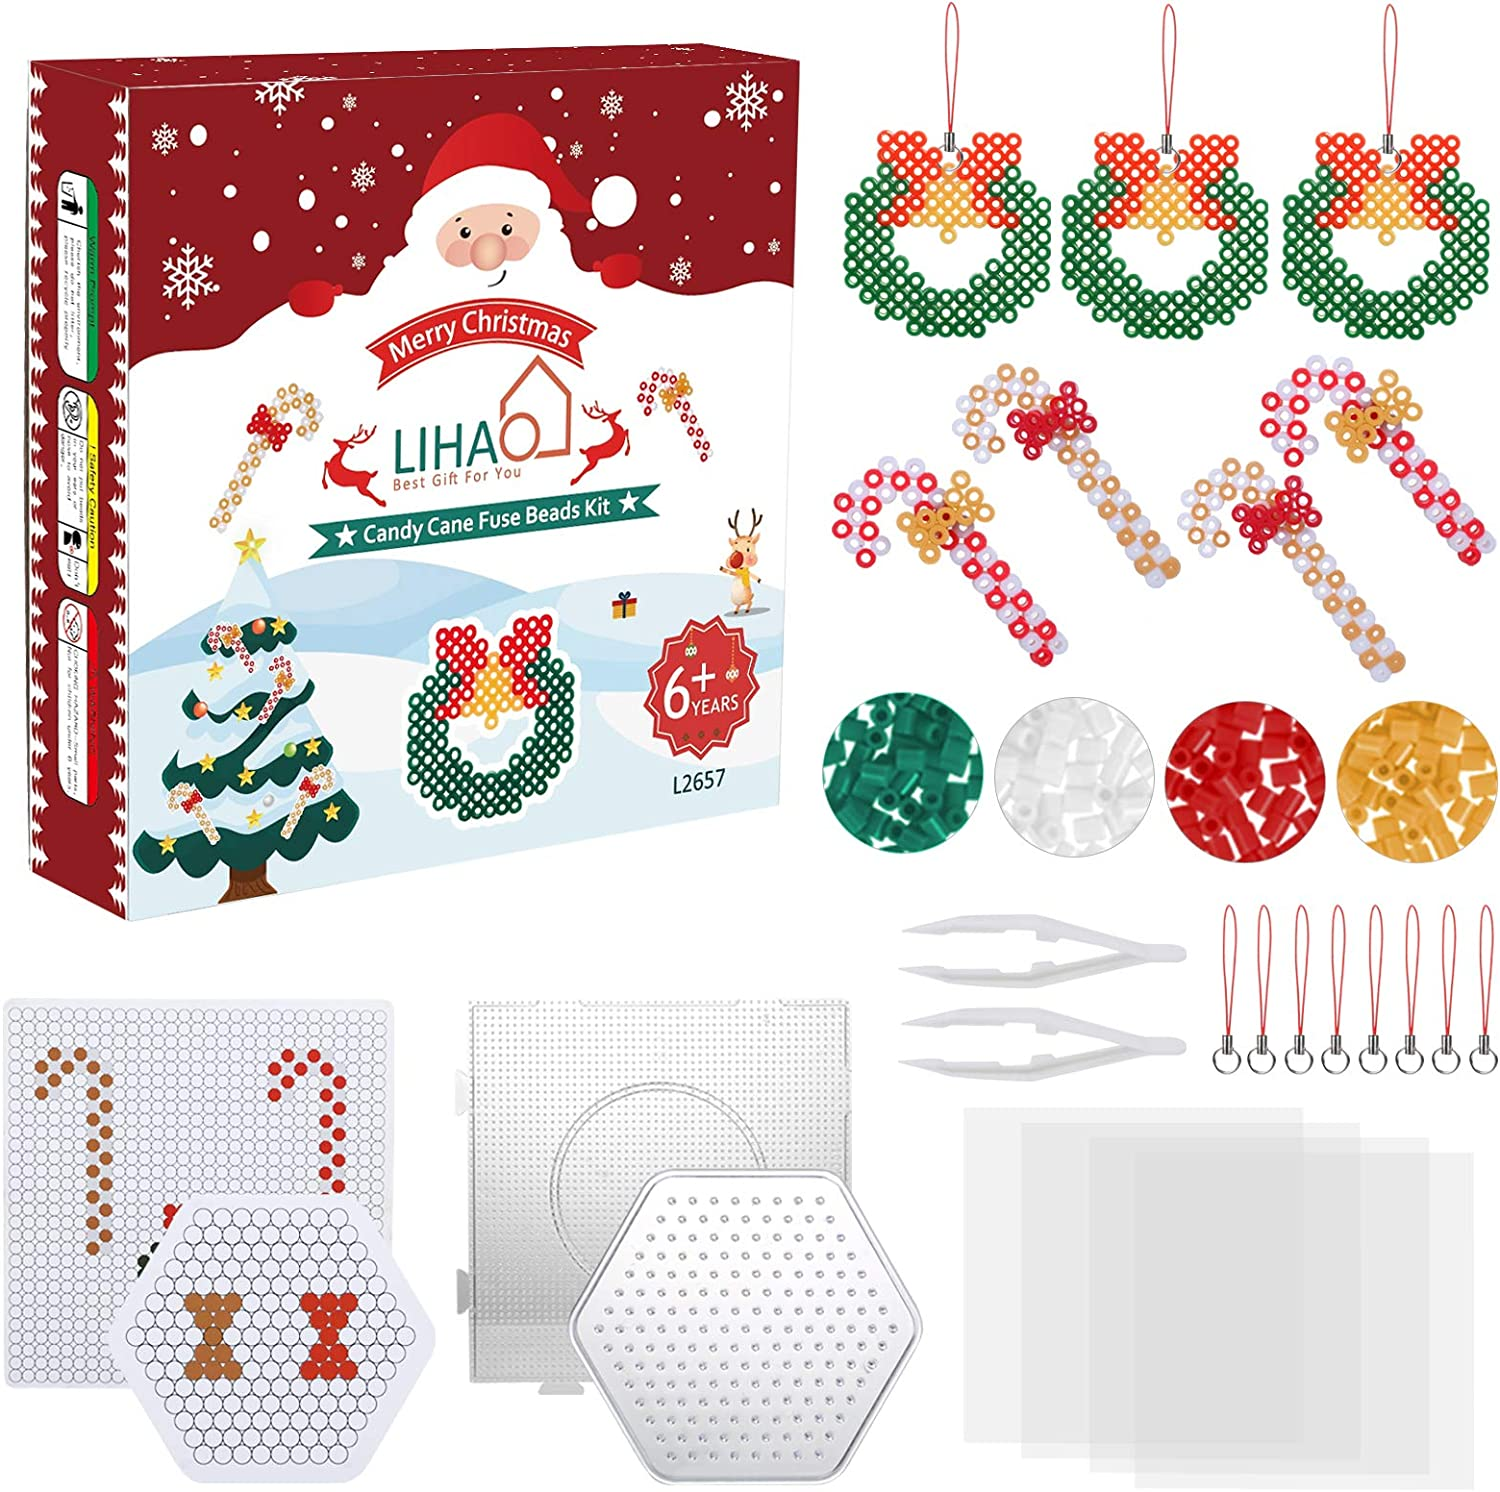 Perfect Kids Party Favor Made Christmas Tree Ornaments Yourself 2100 Pcs Christmas Candy Cane Fuse Beads Kit